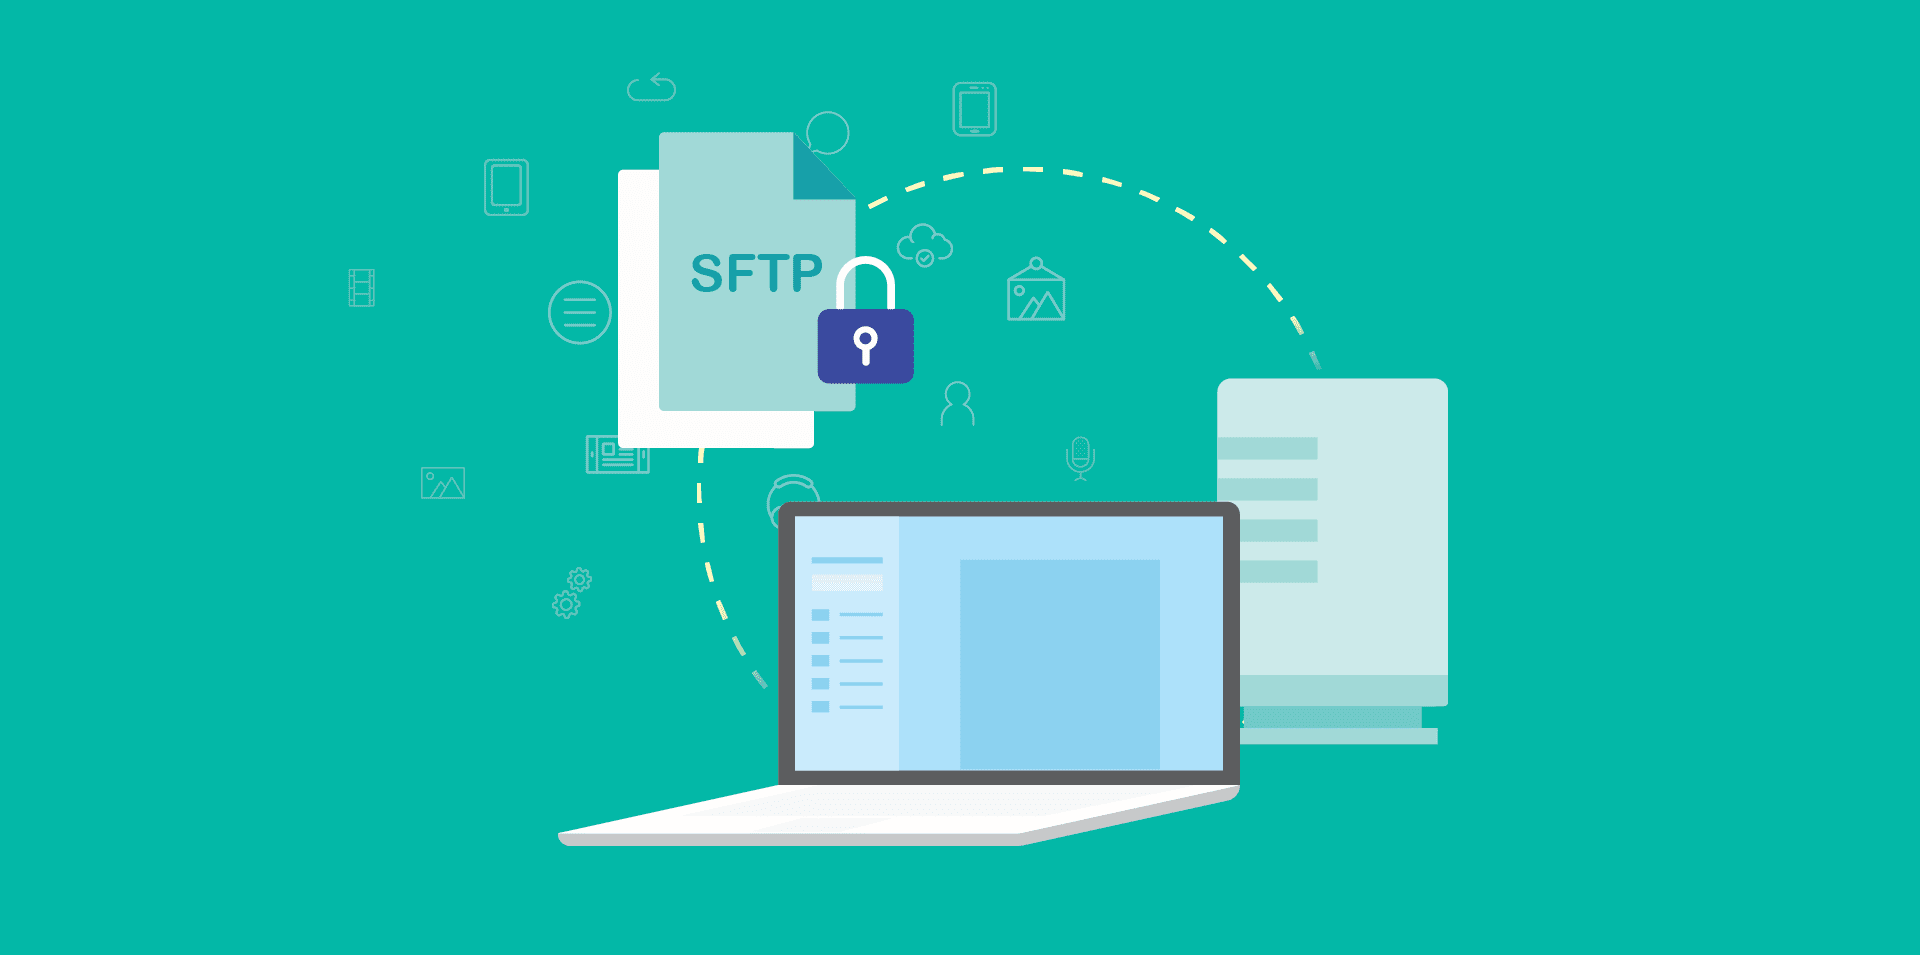 how-to-enable-cai-dat-mod-sftp-vao-proftpd